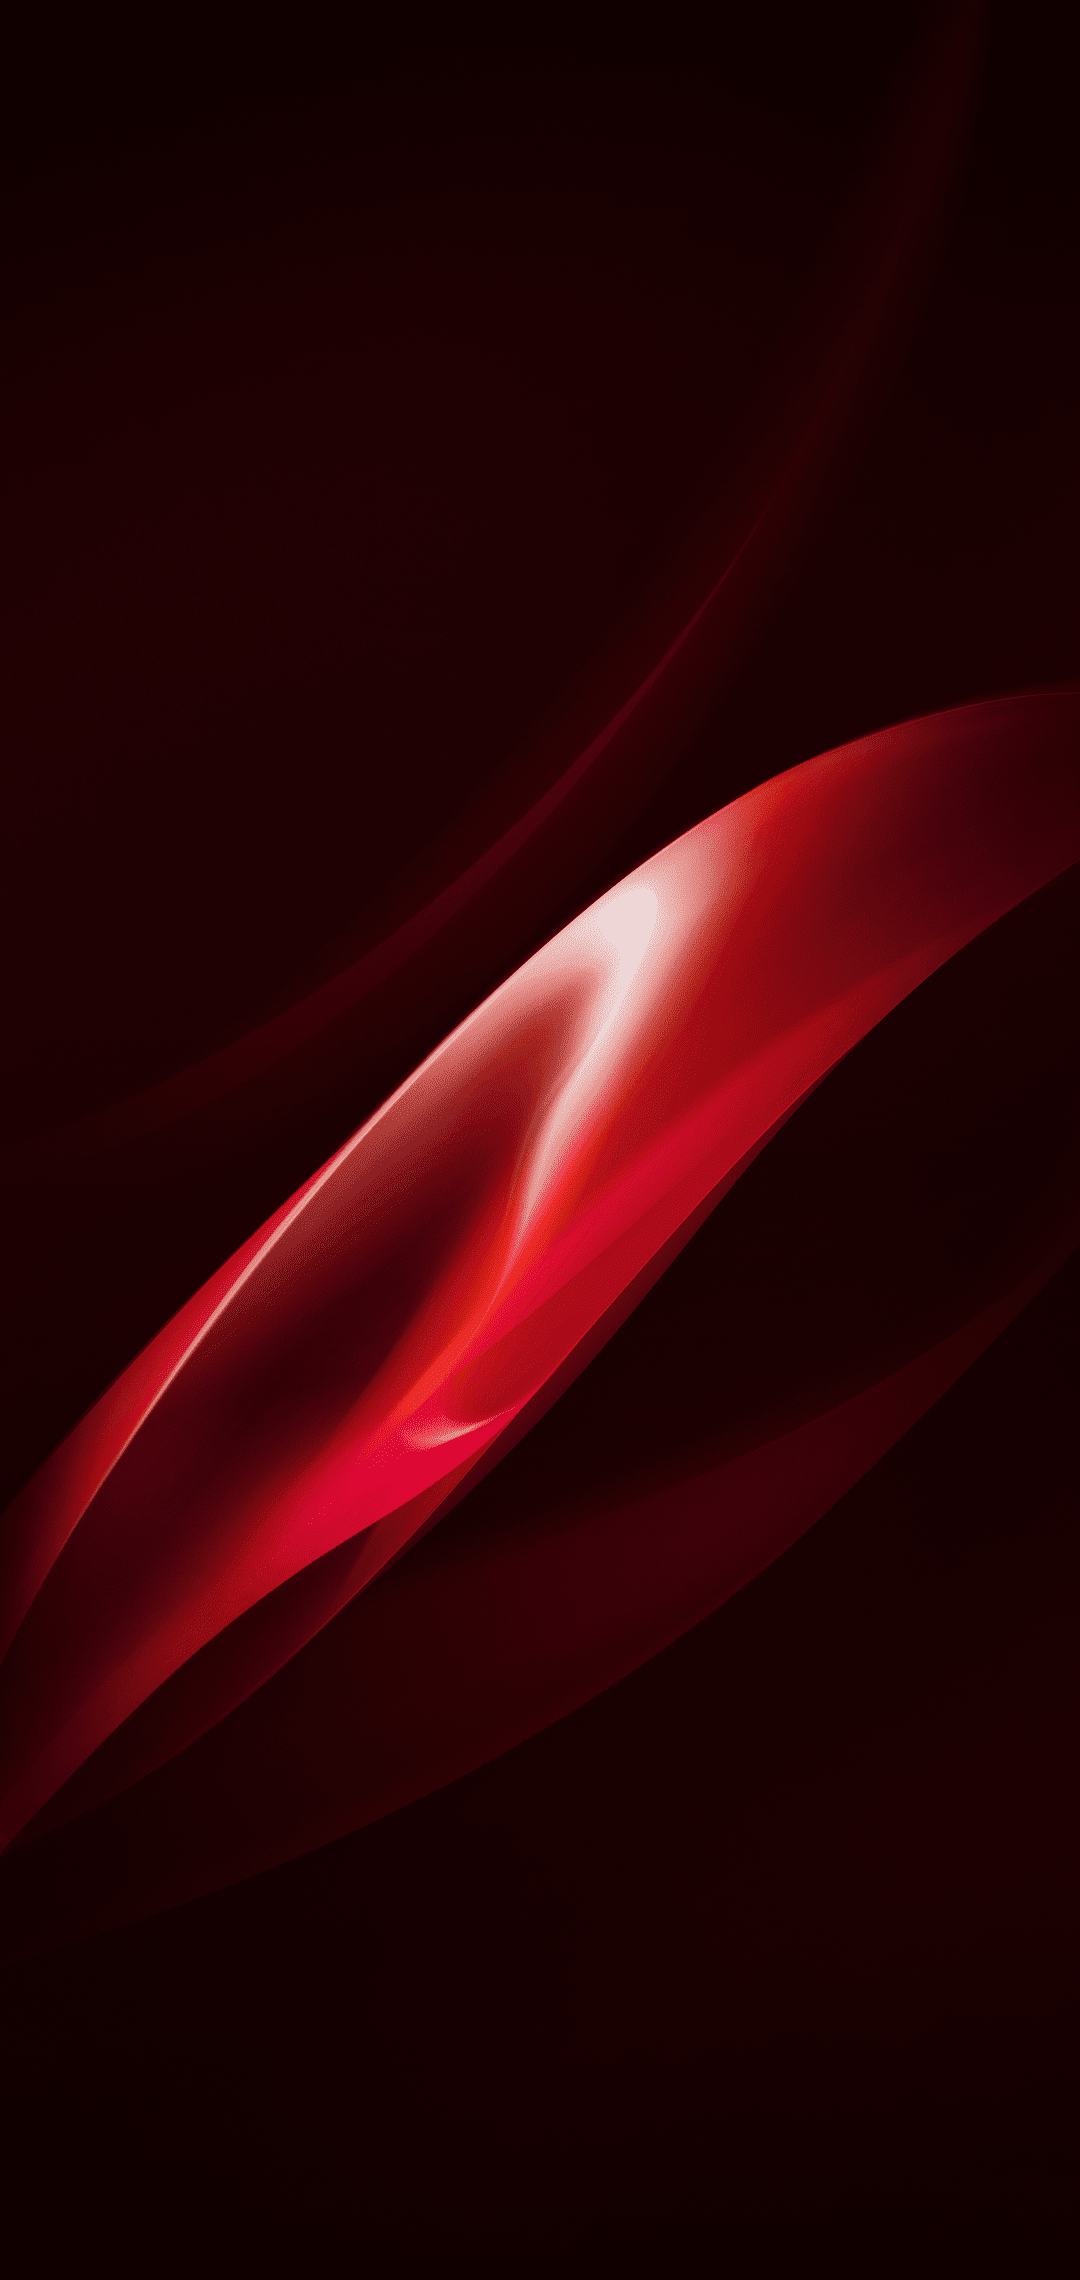 OPPO R15 Stock Wallpapers | Download 16